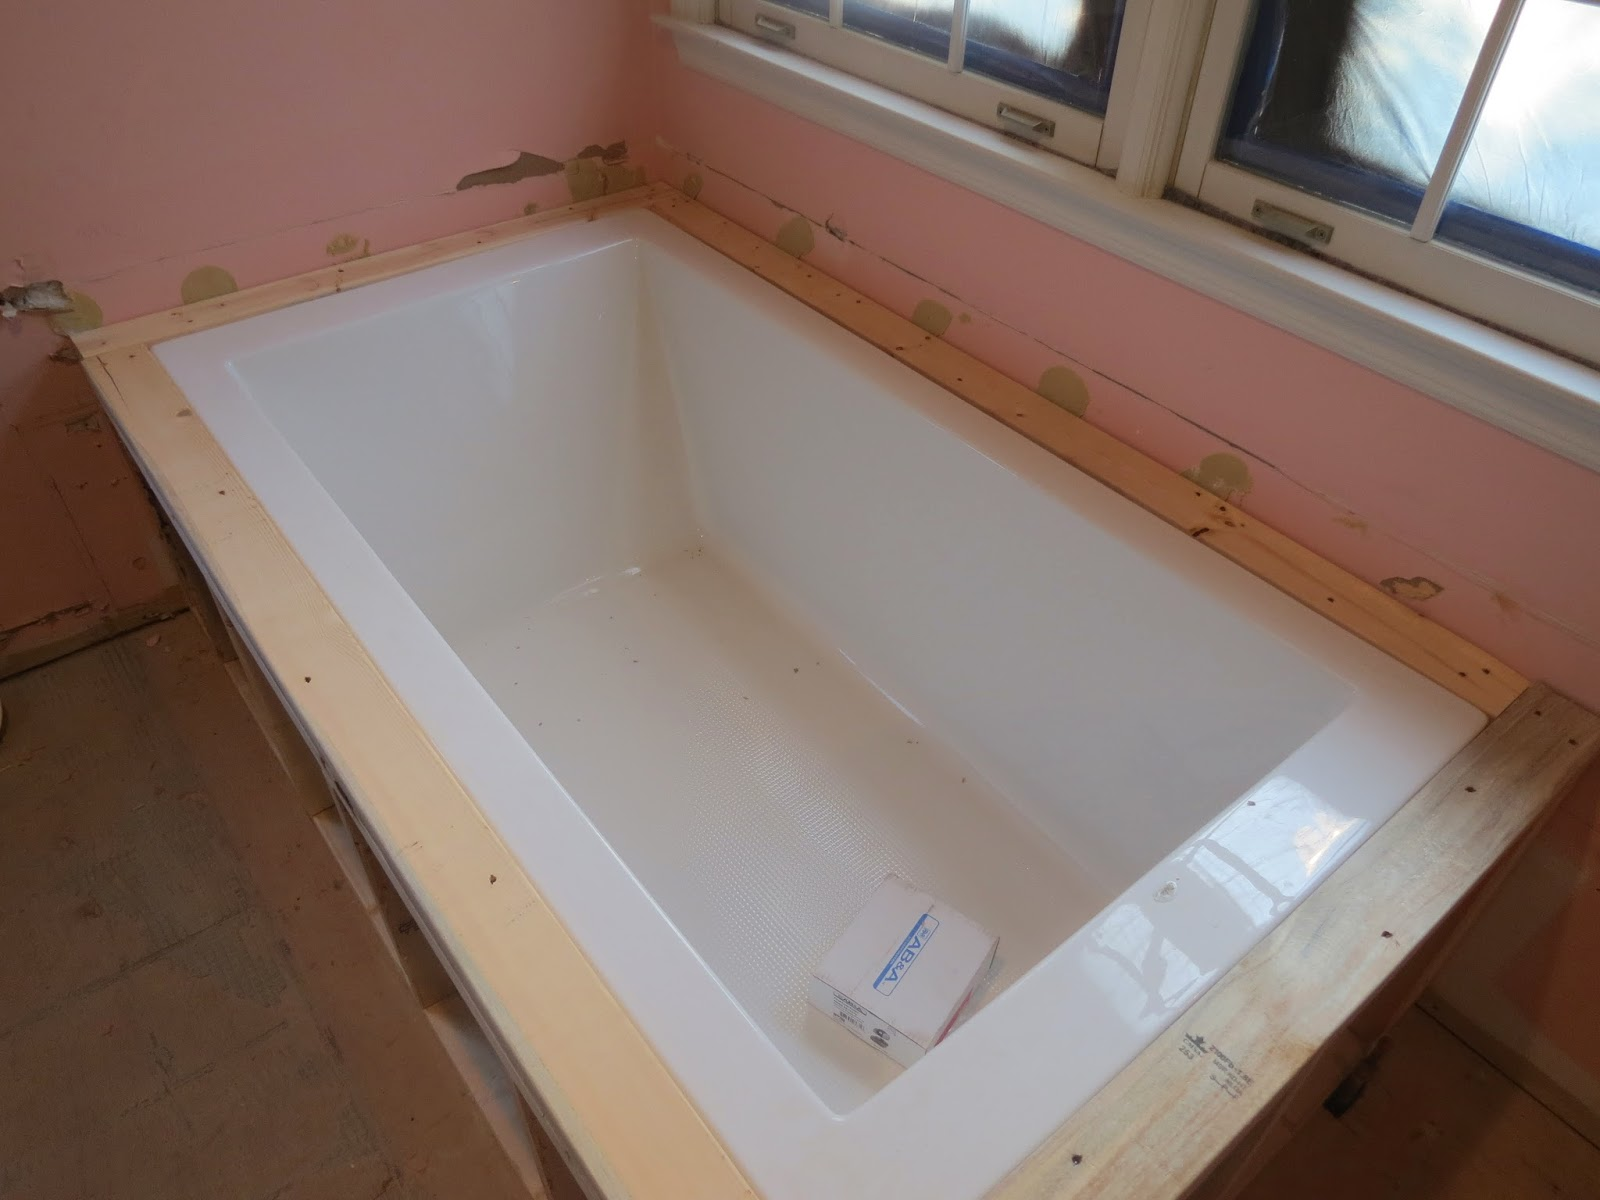 How To Install Undermount Bathroom Sink To Granite Home Design